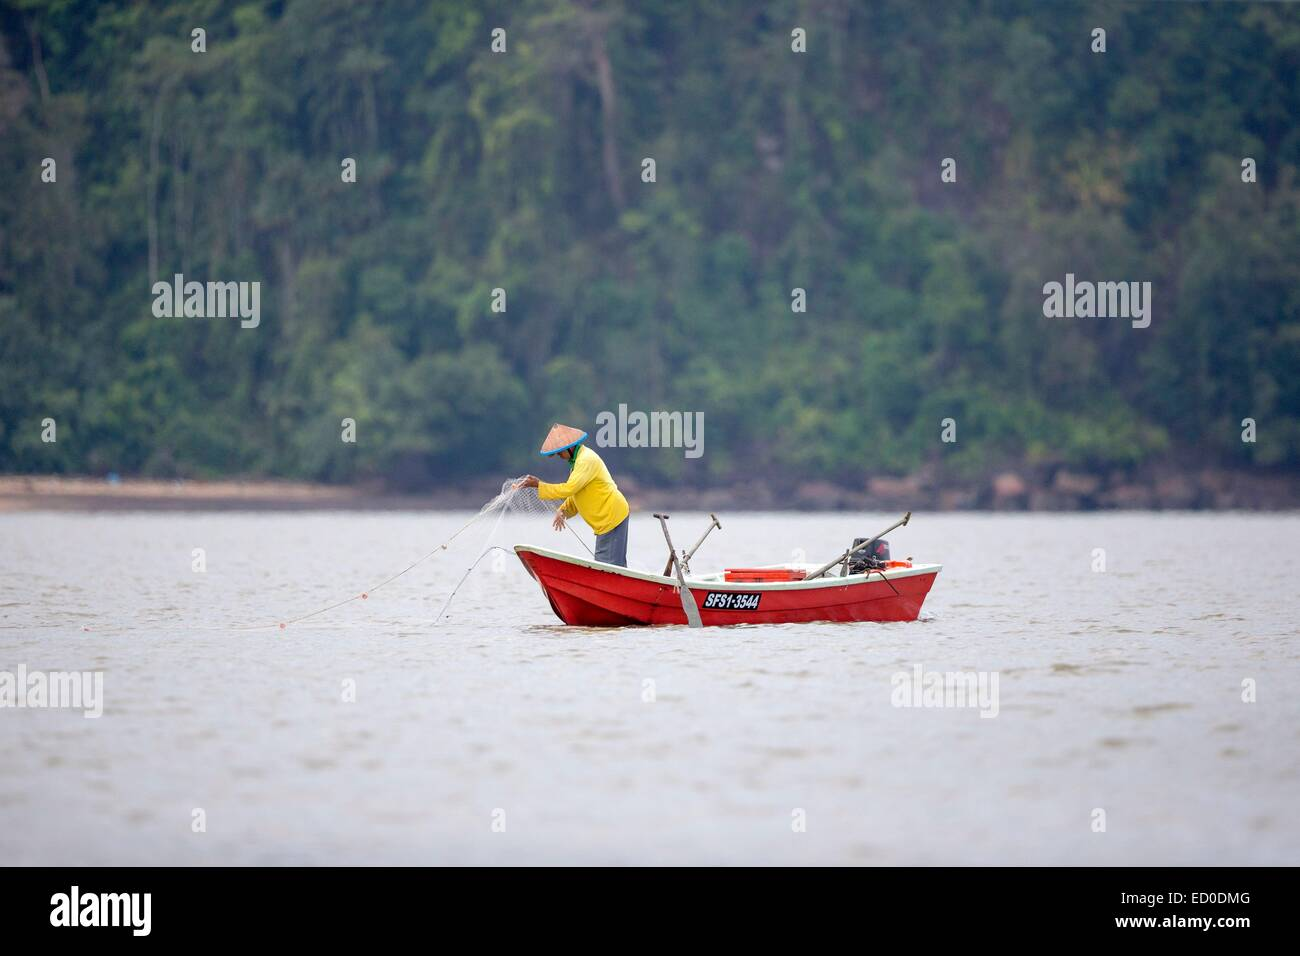 Malaysia, Sarawak state, Kuching, fisherman at the mouth of the river Salak in the South China Sea Stock Photo